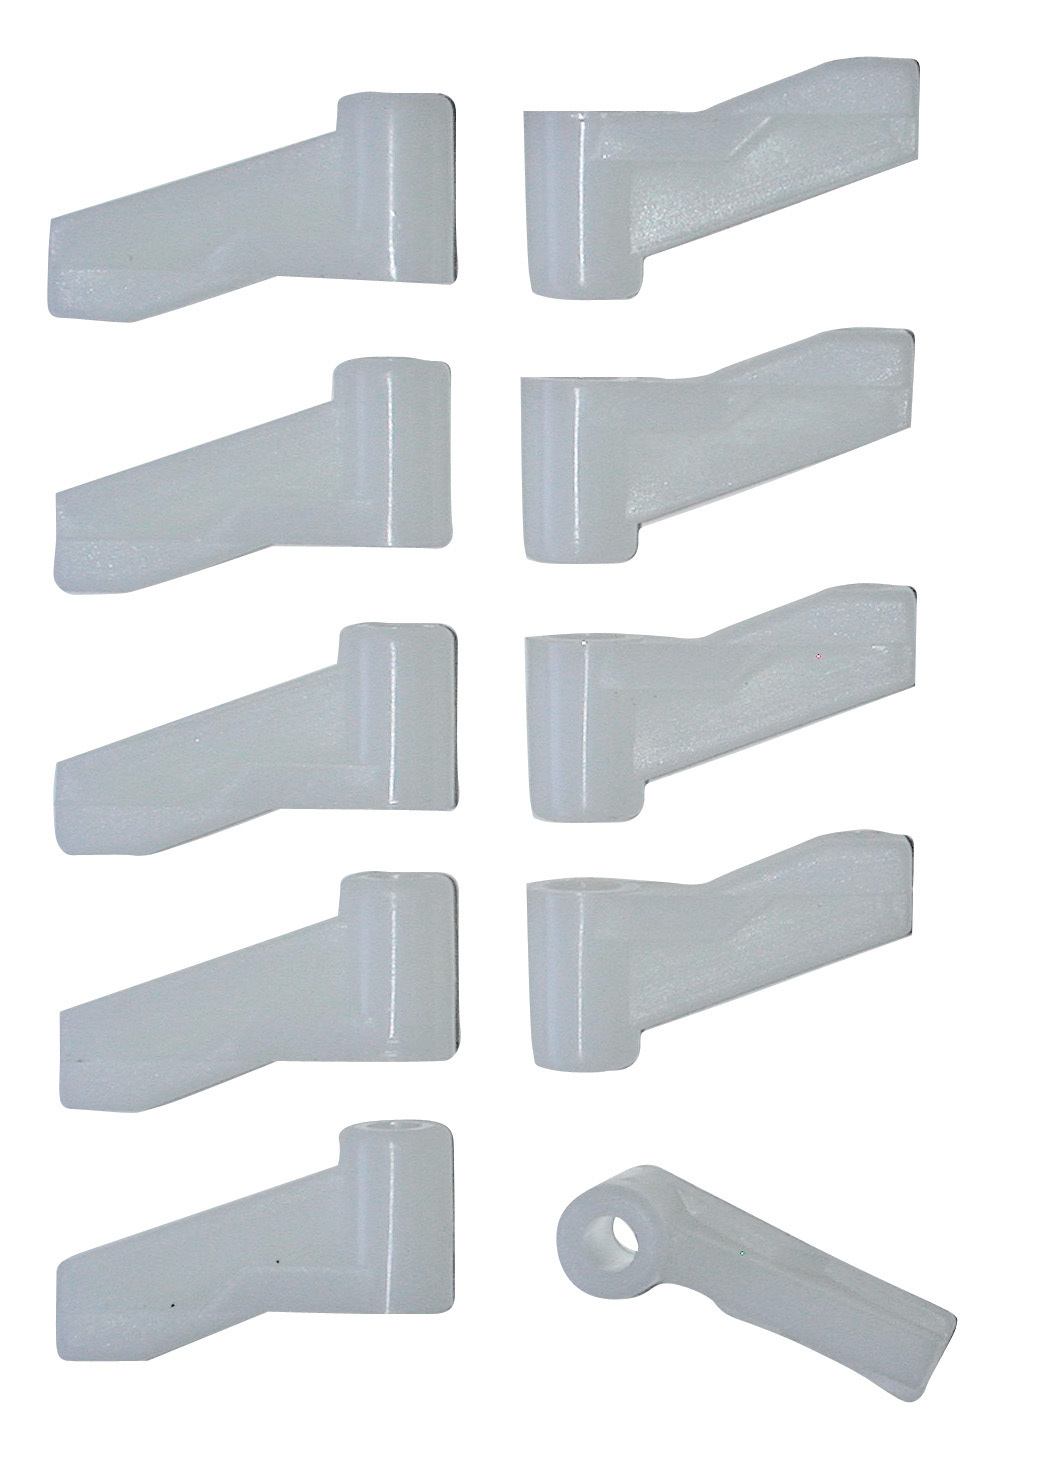 Replacement Pawls - 10 Pack WDPAWLS-10